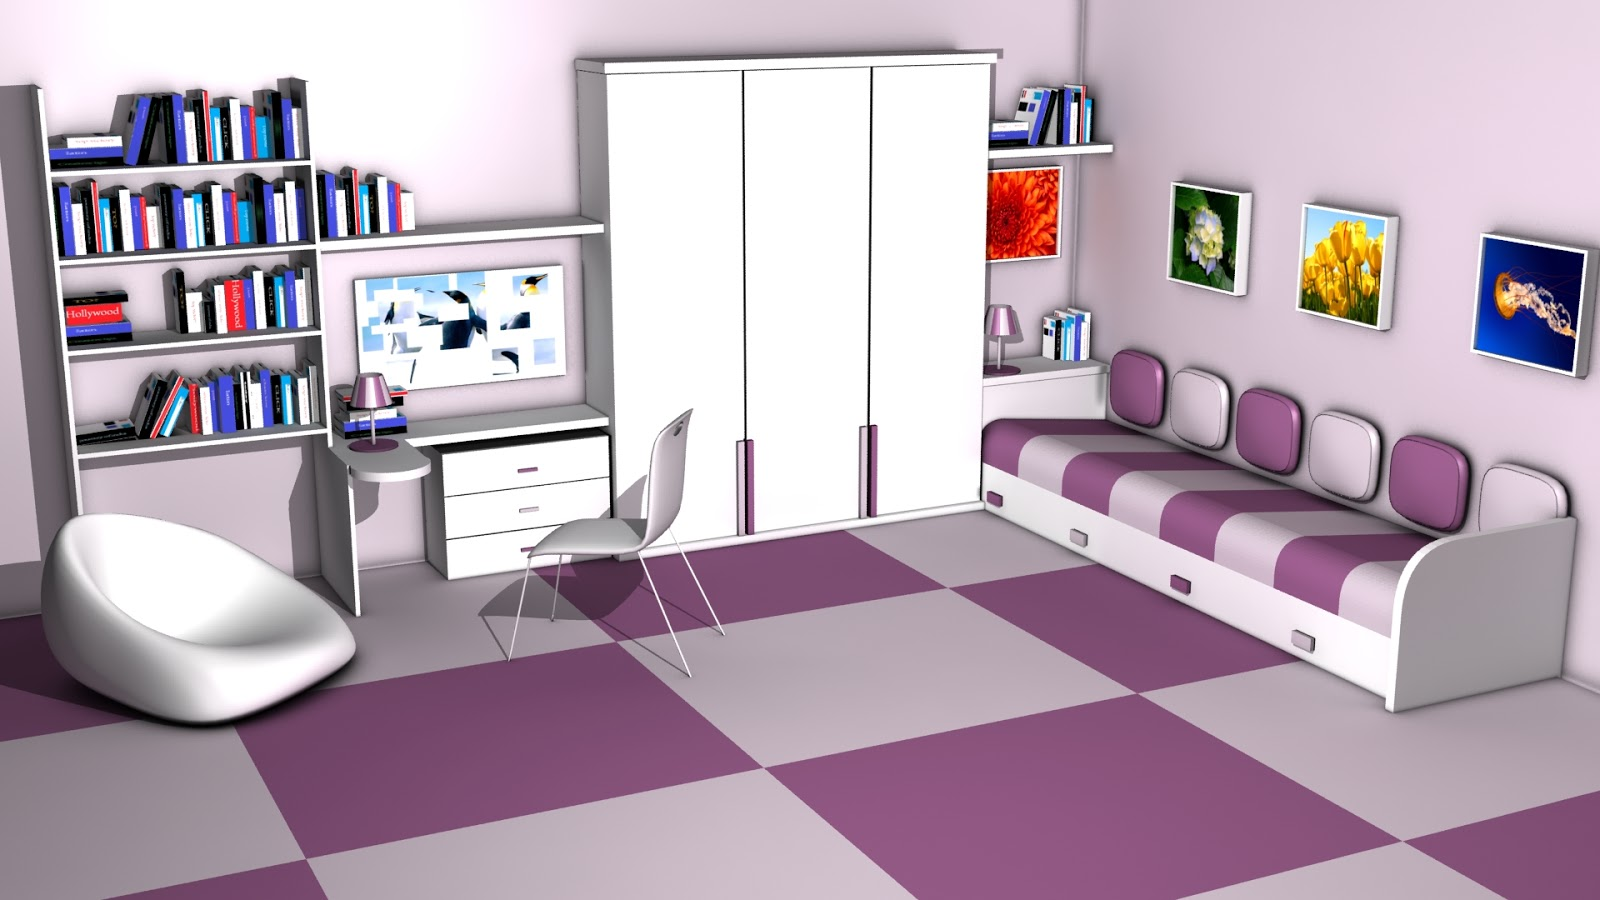 Sajid designs room interior design 3ds max for 3d room design mac